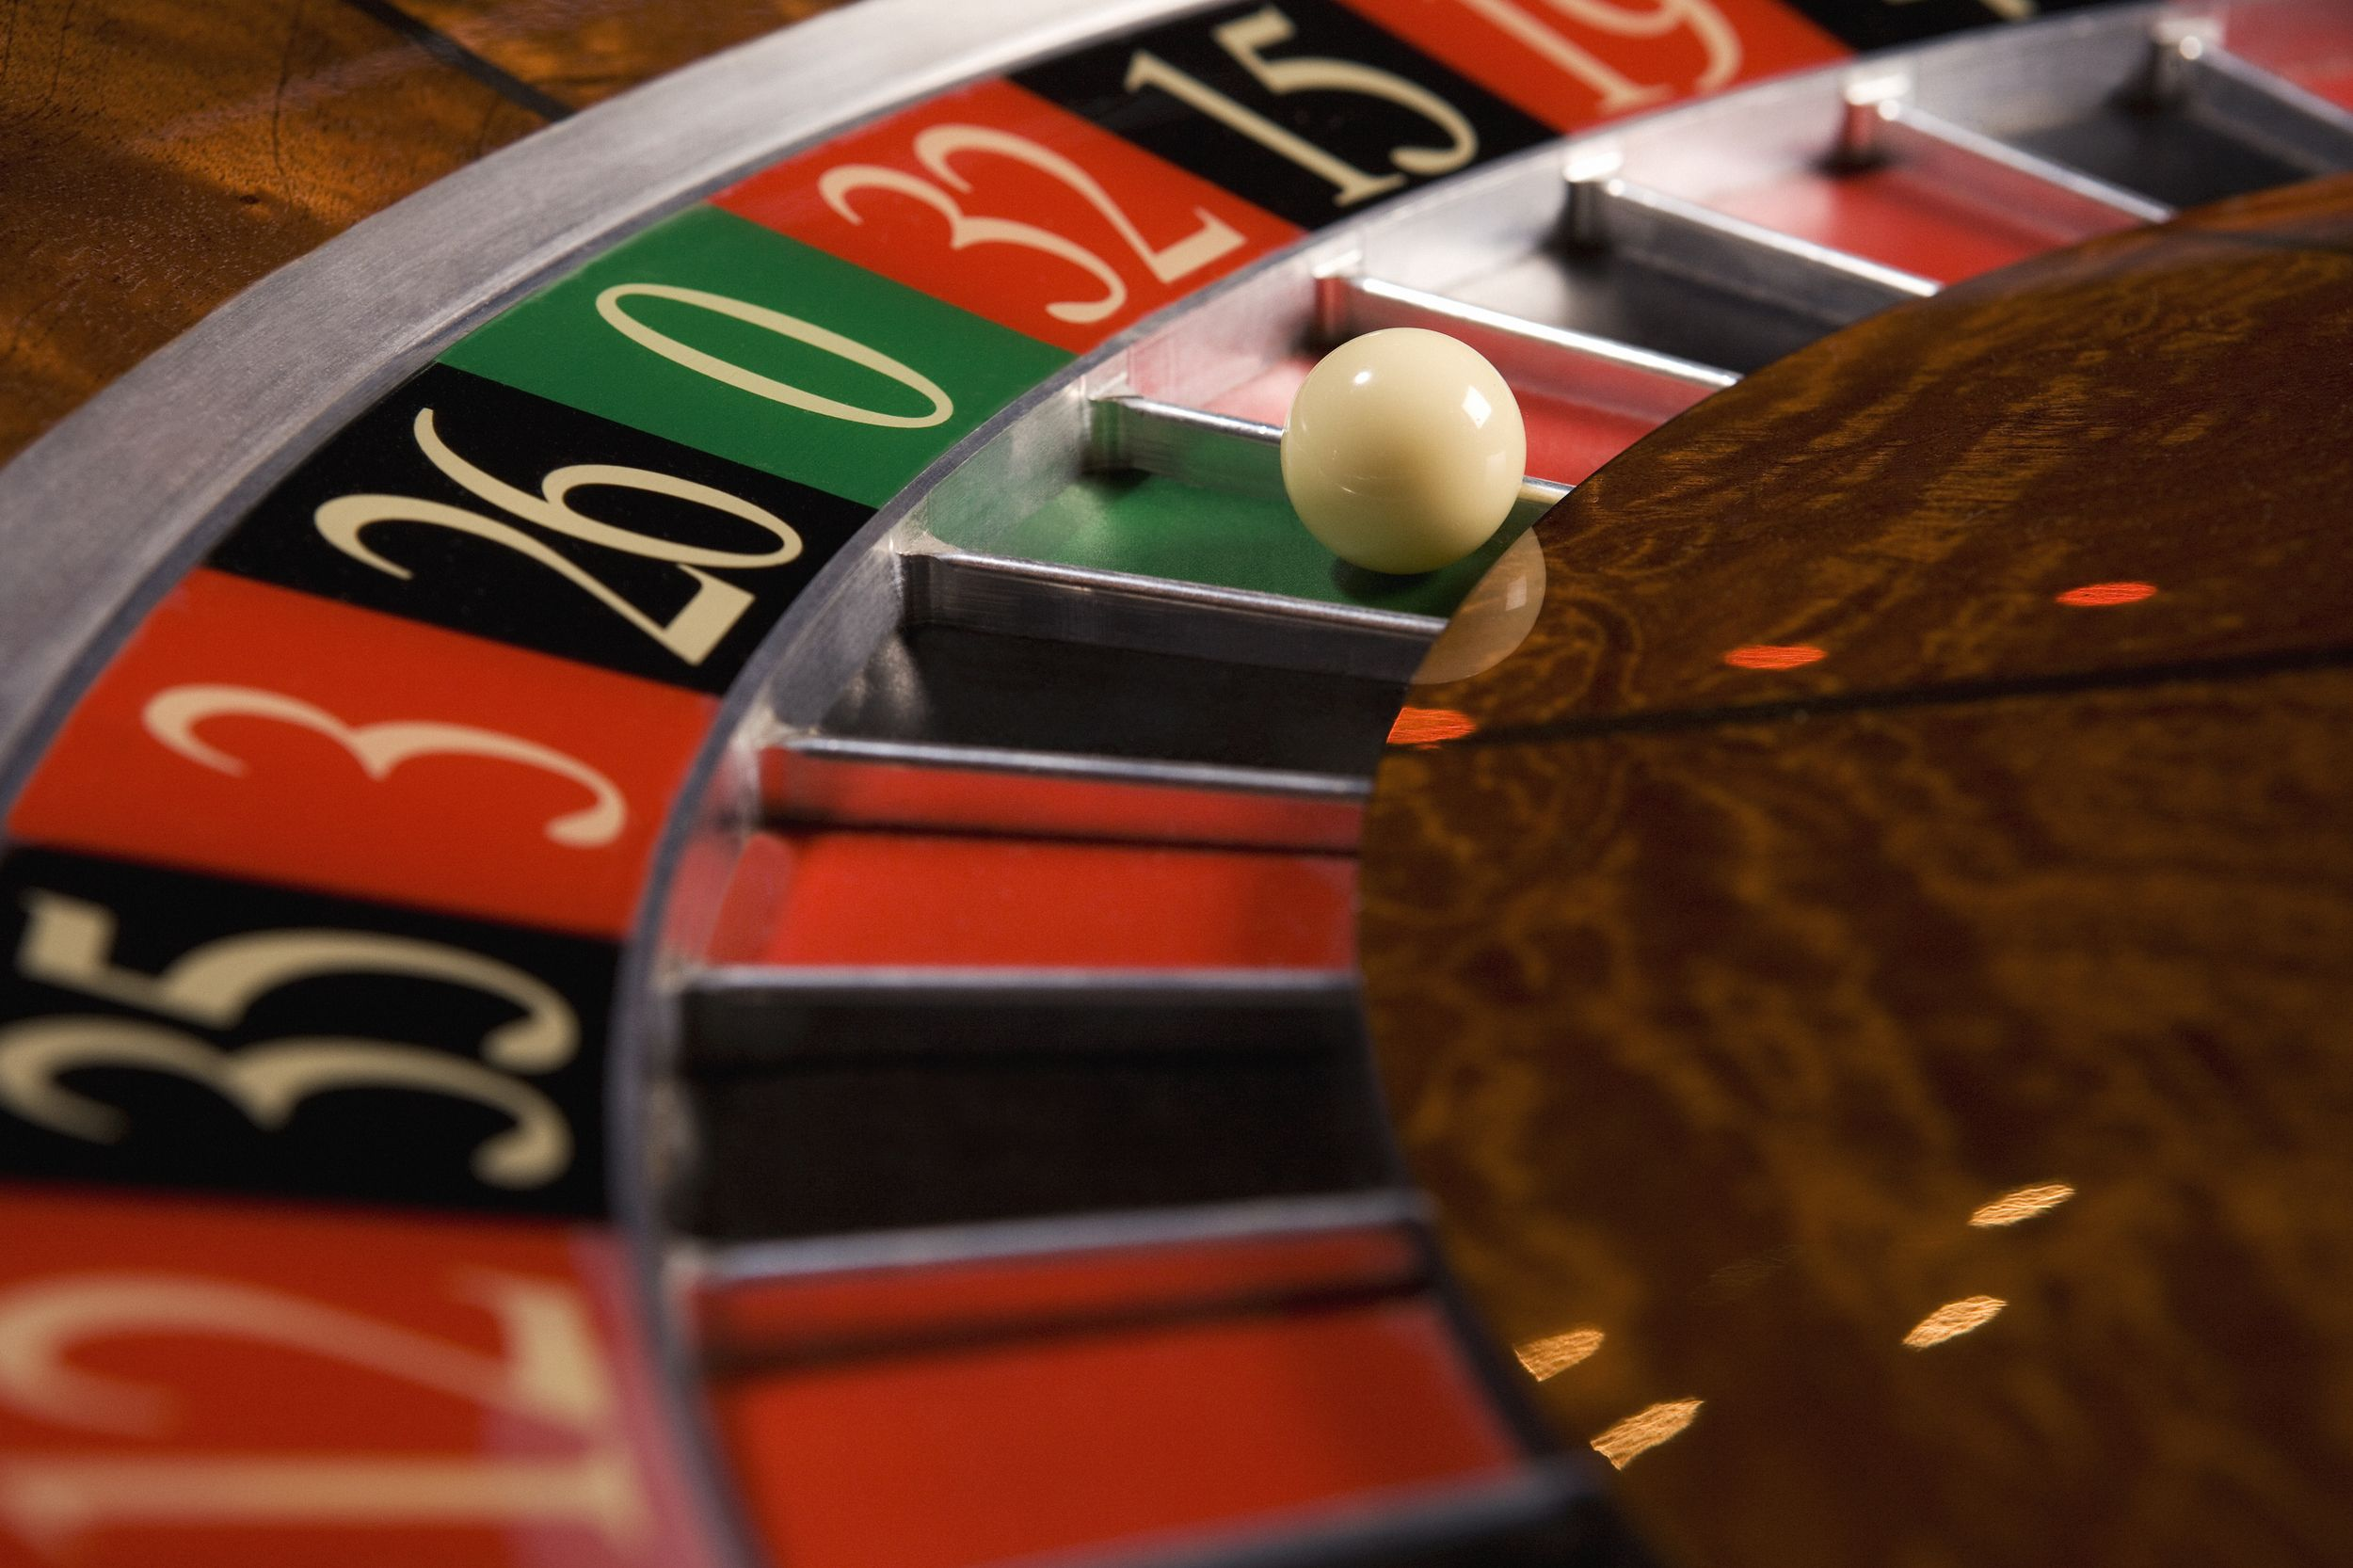 Recouping gambling losses poker at maybury casino edinburgh